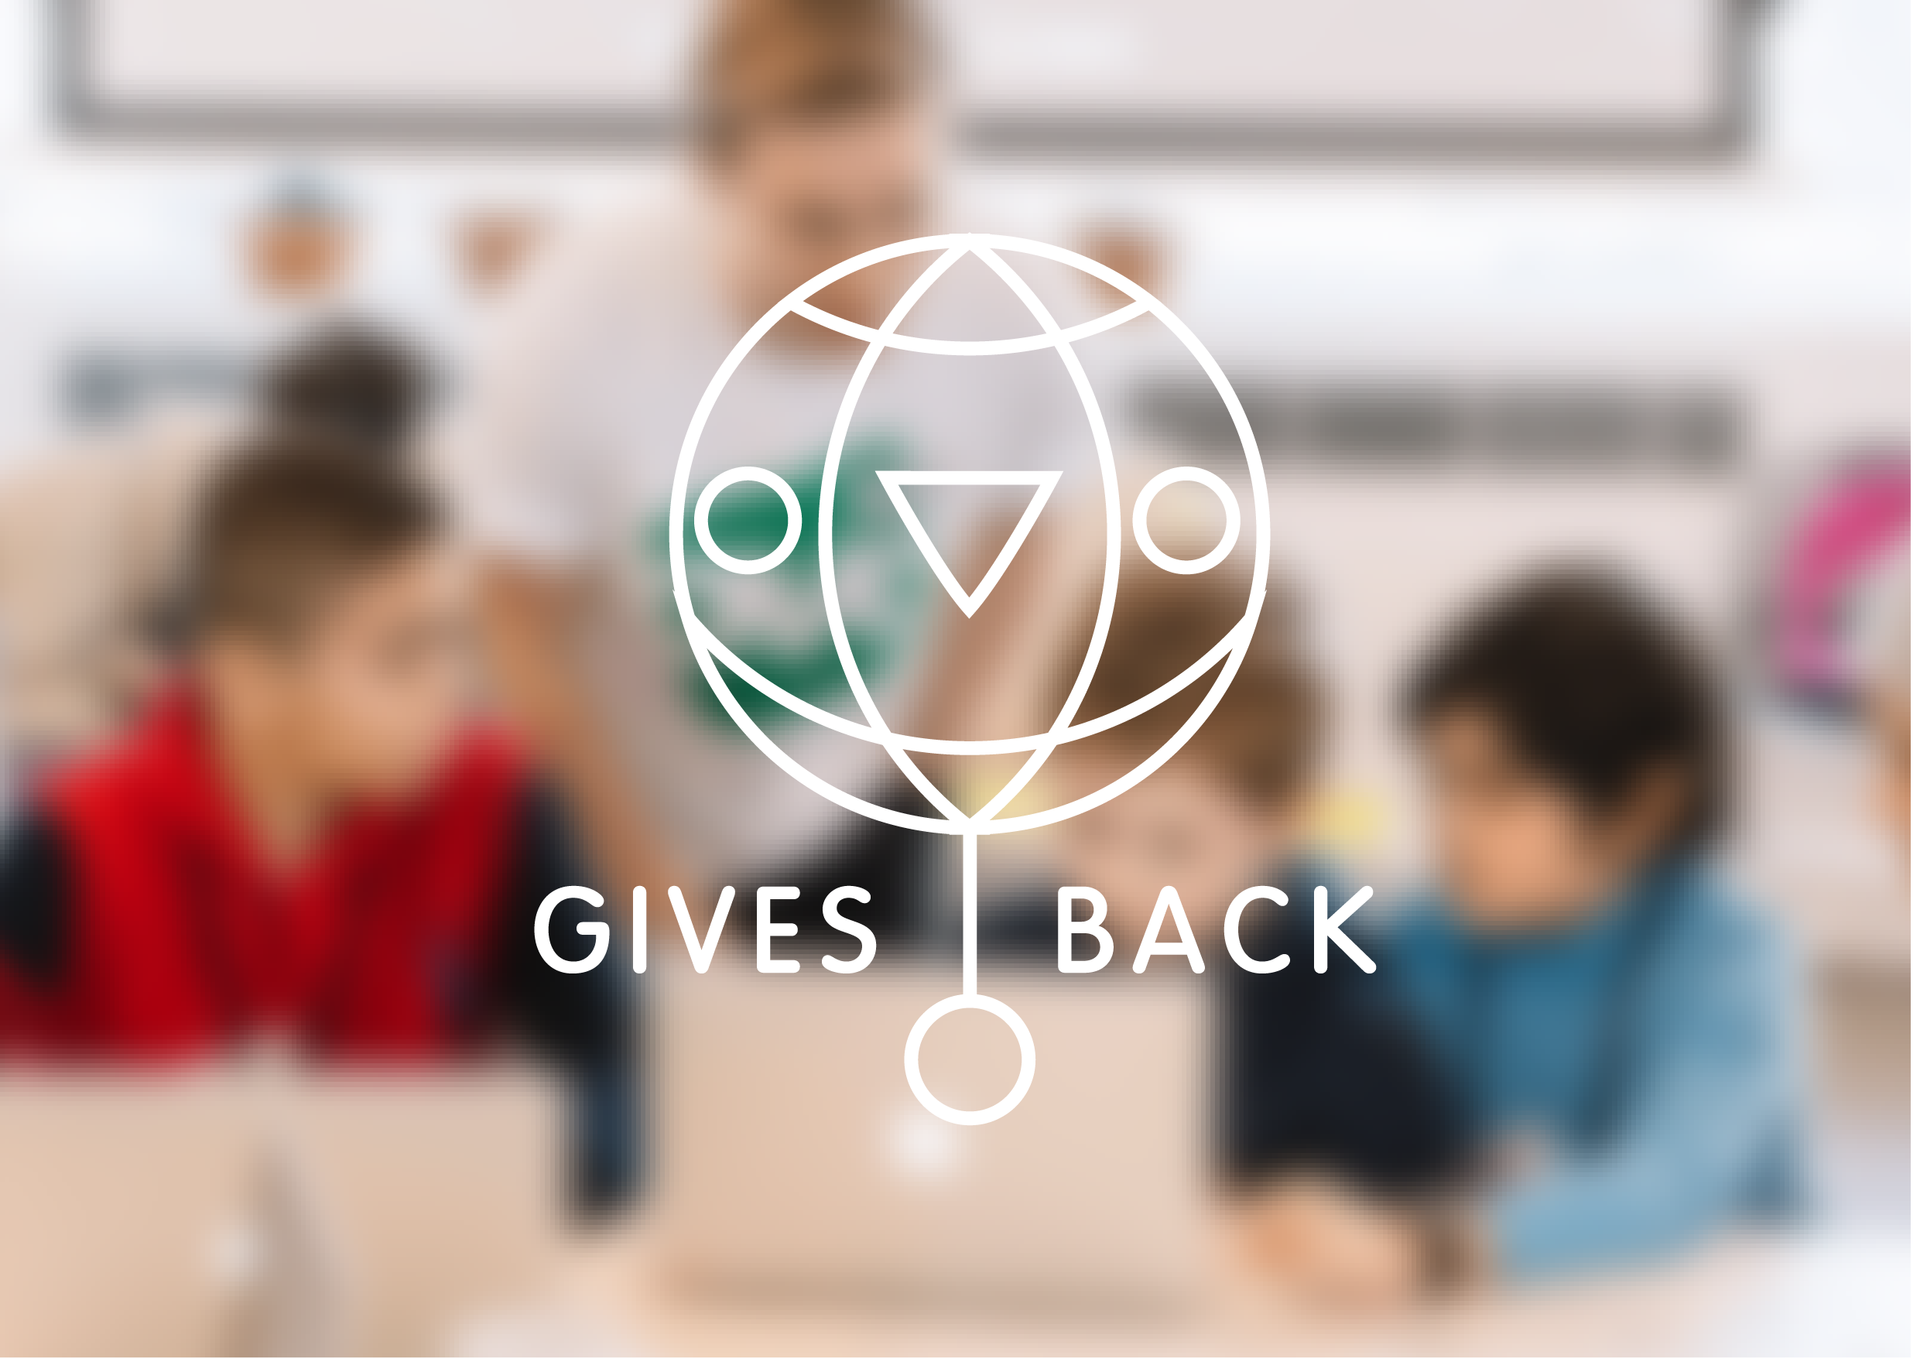 ovo-gives-back-2-12.png